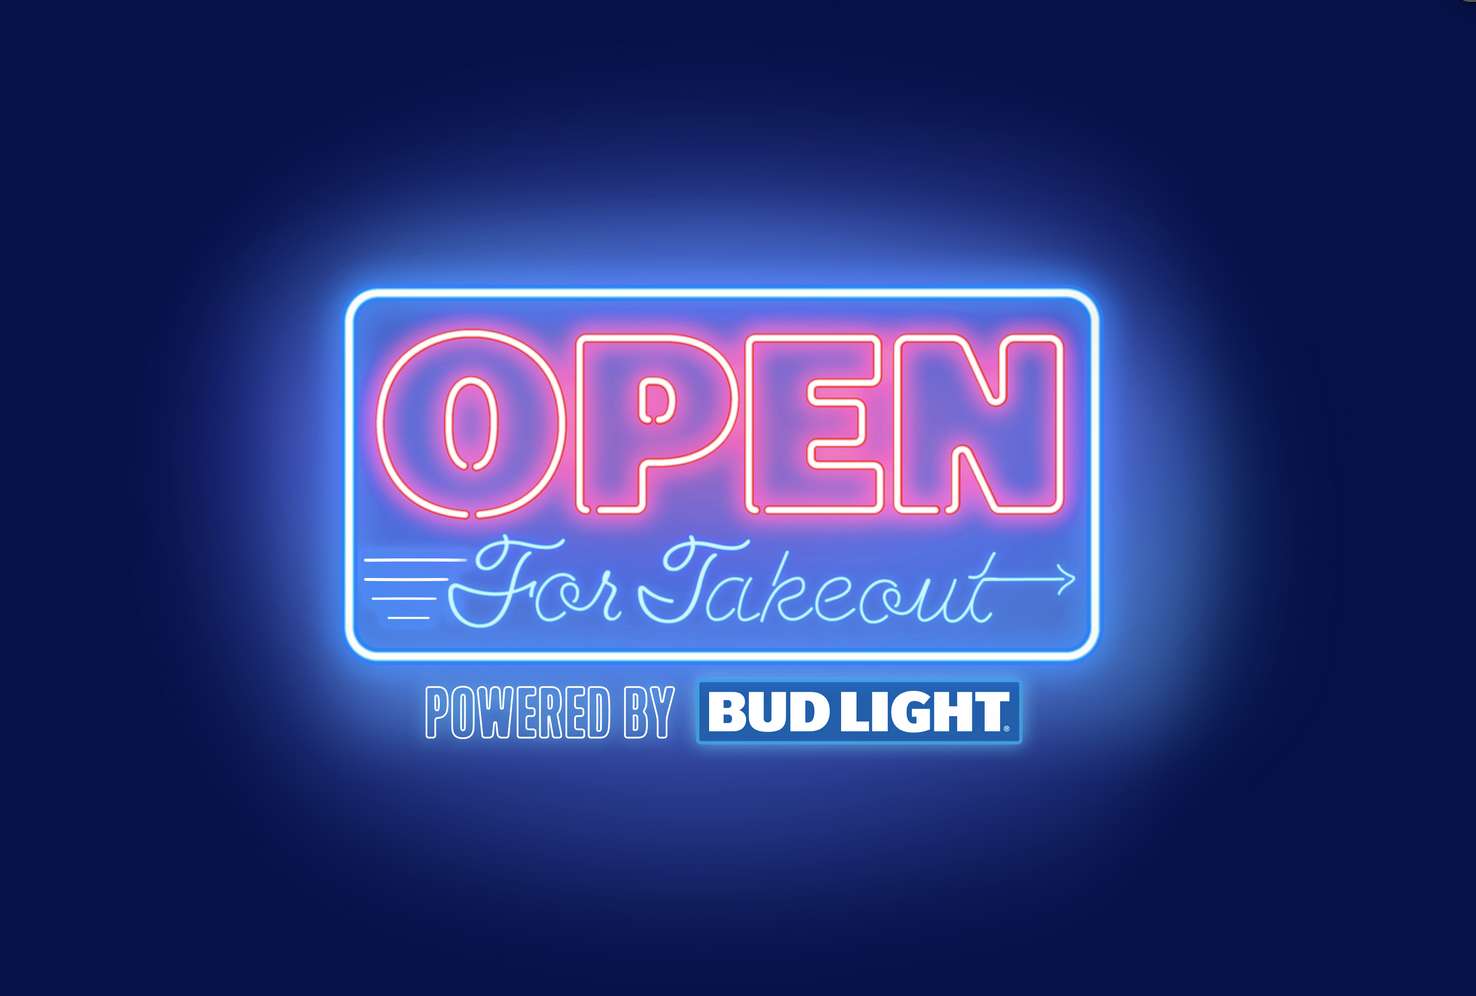 Open for Takeout Powered by Bud Light